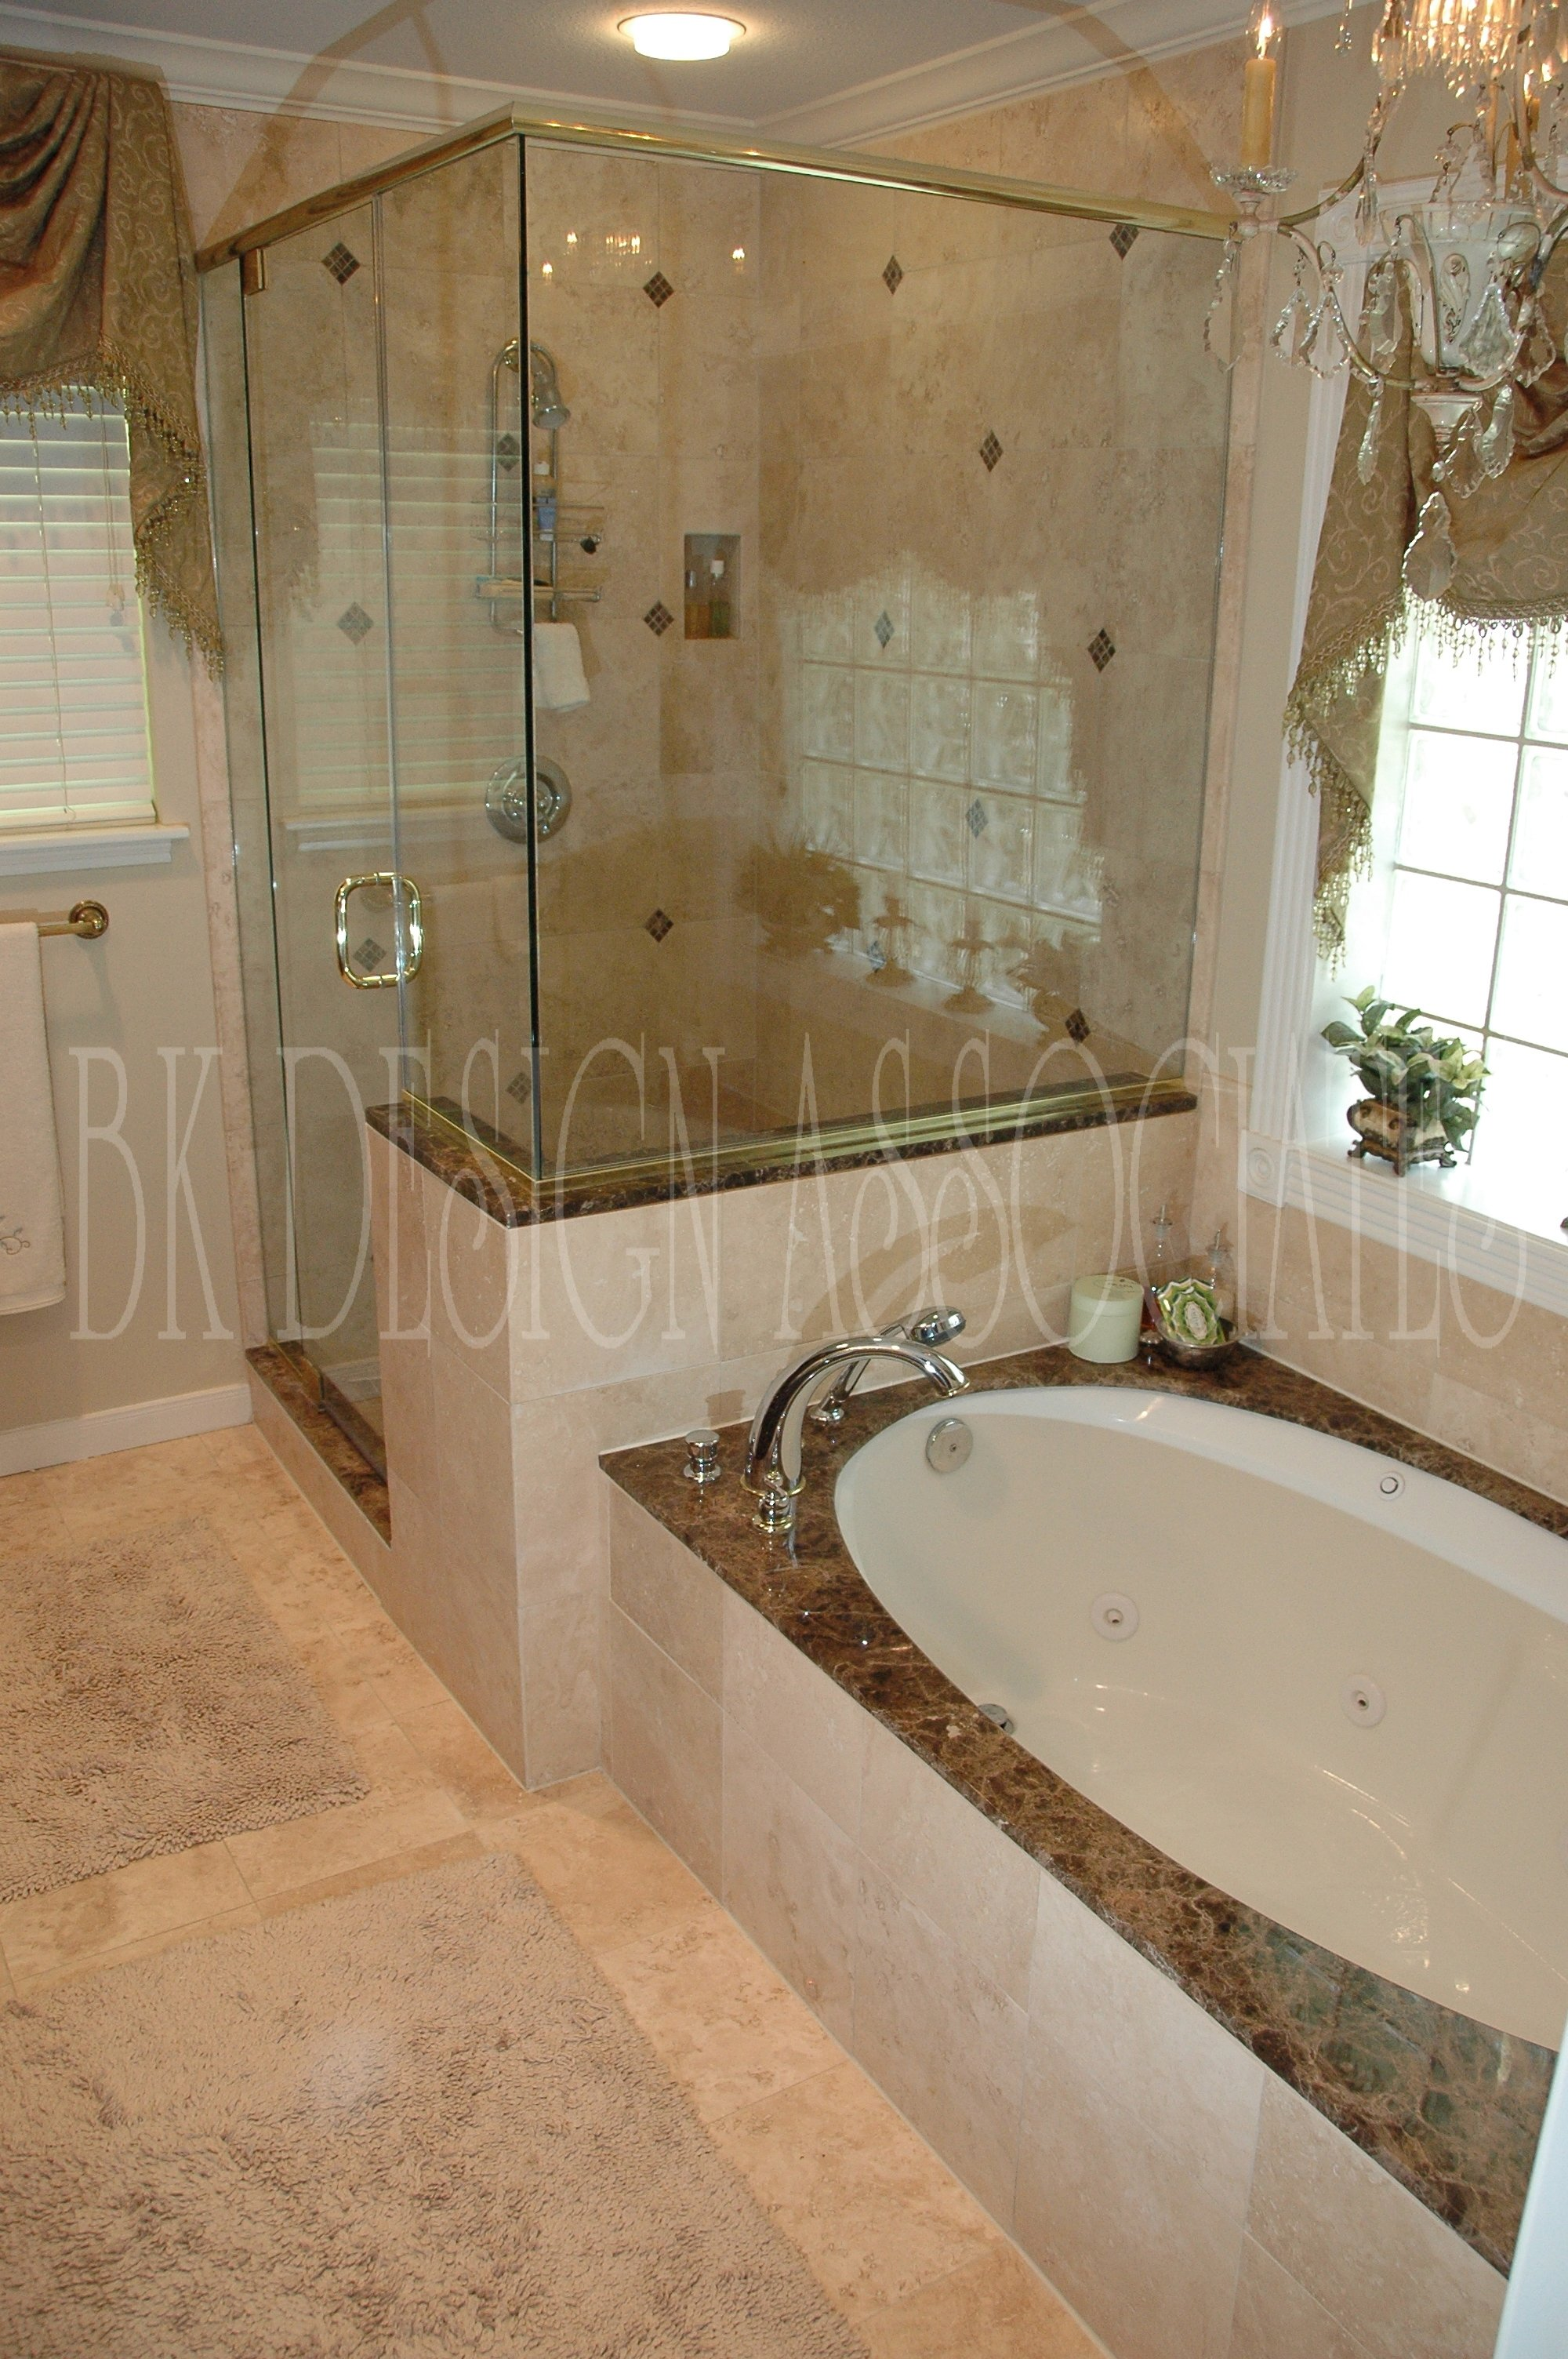 10 Awesome Bathroom Tubs And Showers Ideas bathroom shower master showers ideas for and tile loversiq 2020